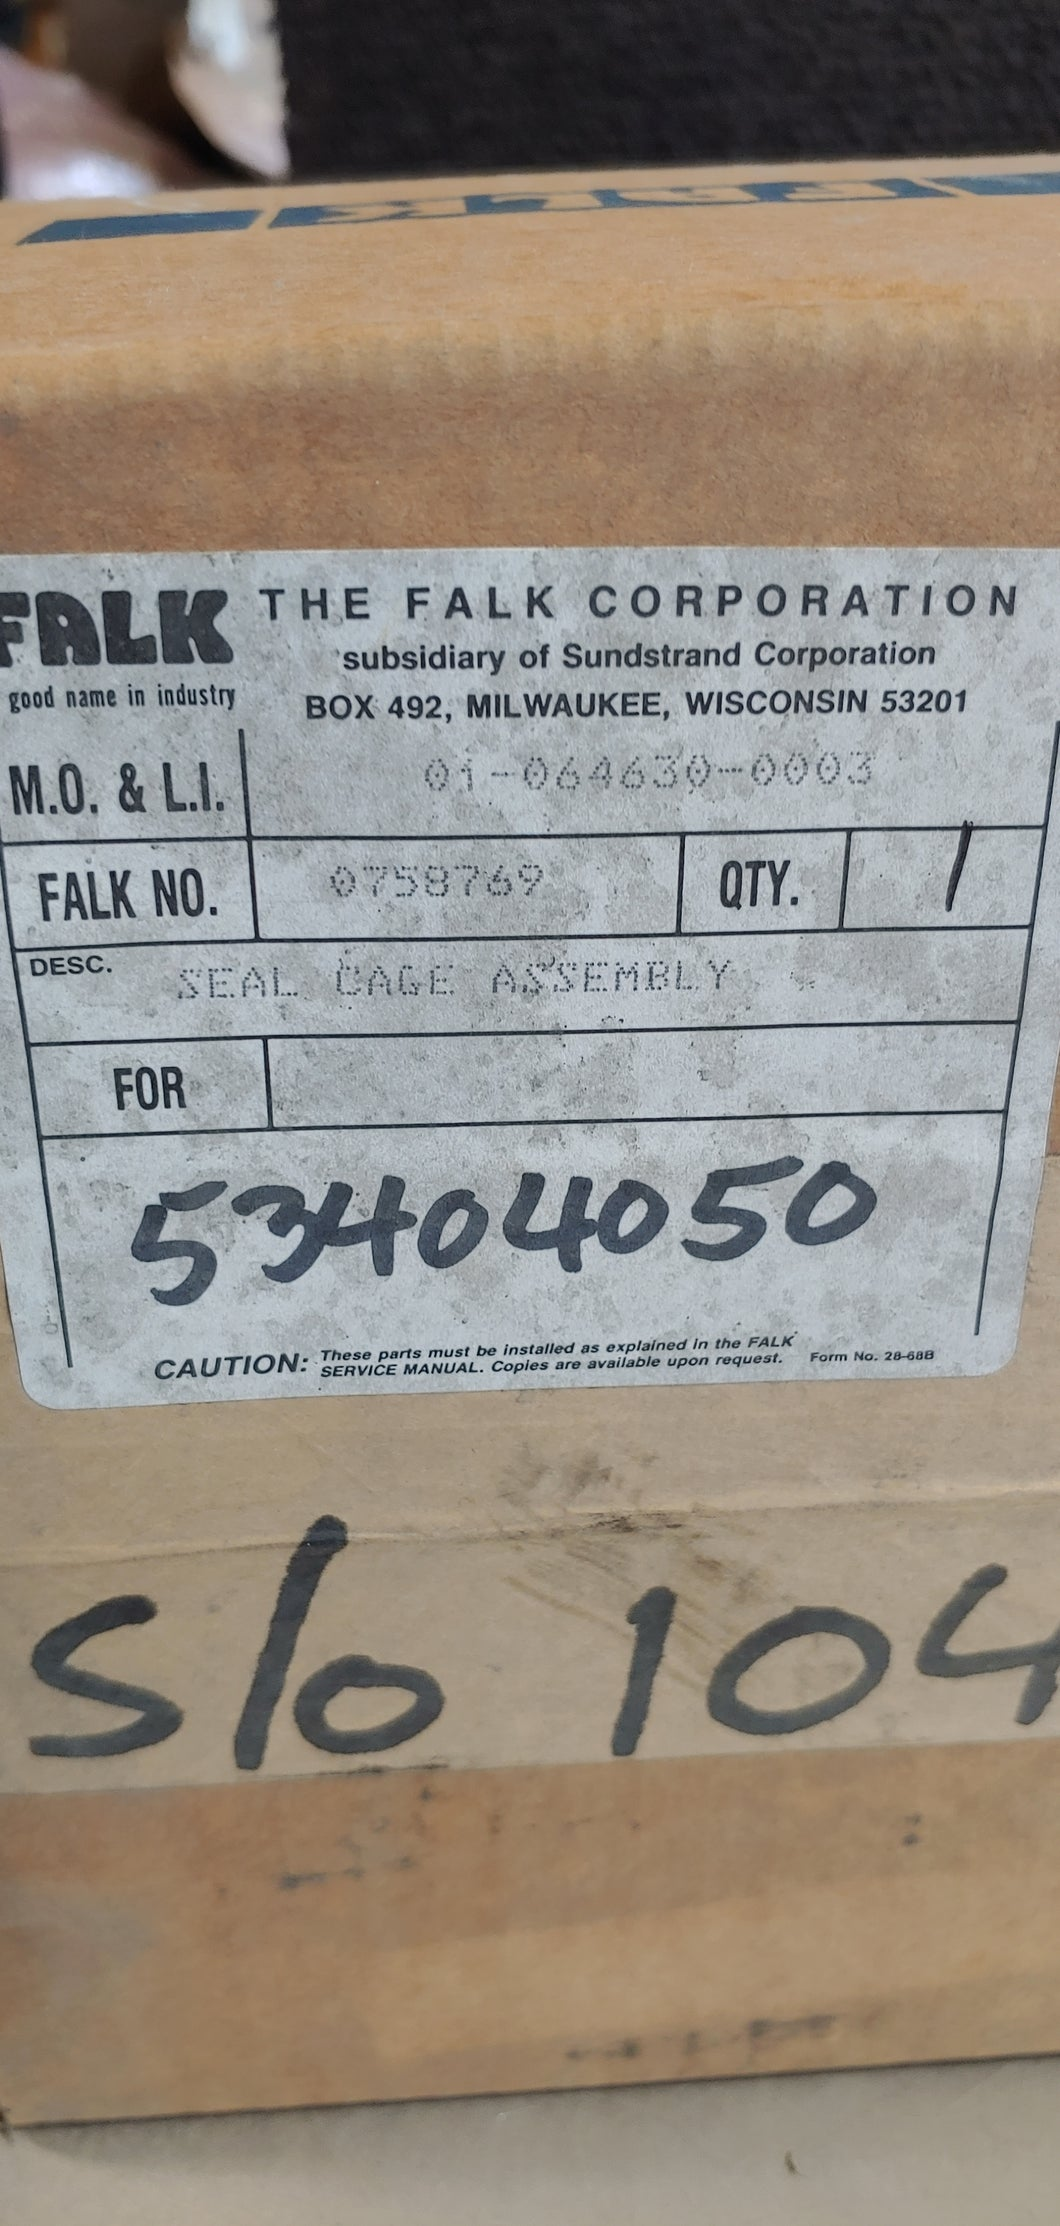 Falk Seal Cage Assembly 0758769